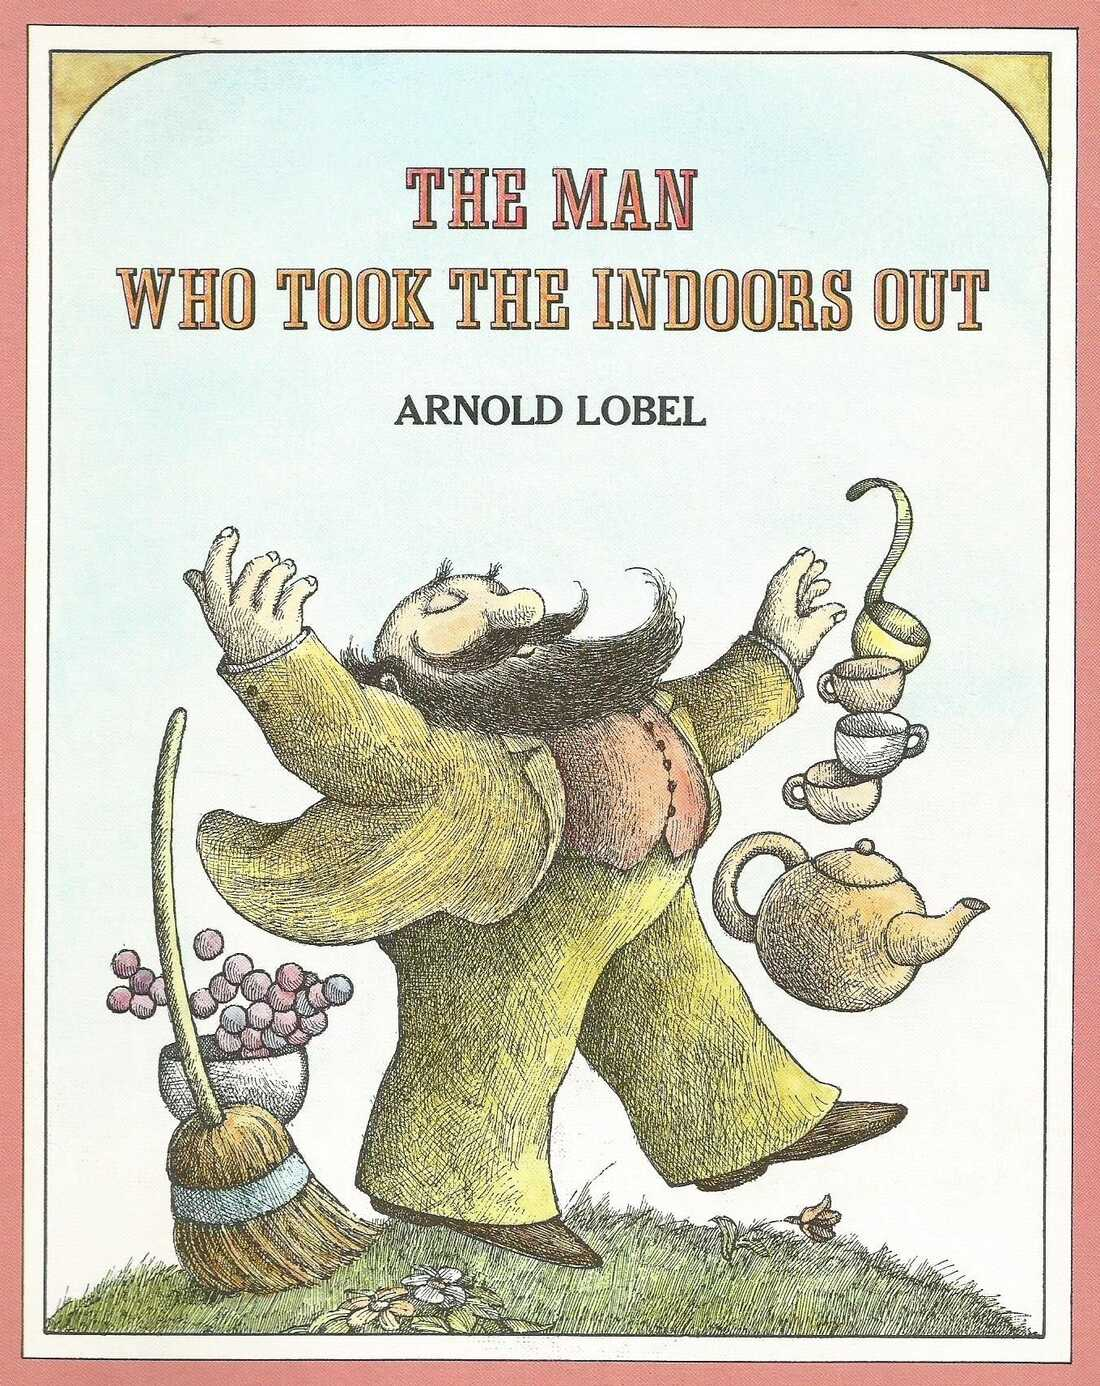 The Man Who Took the Indoors Out, by Arnold Lobel